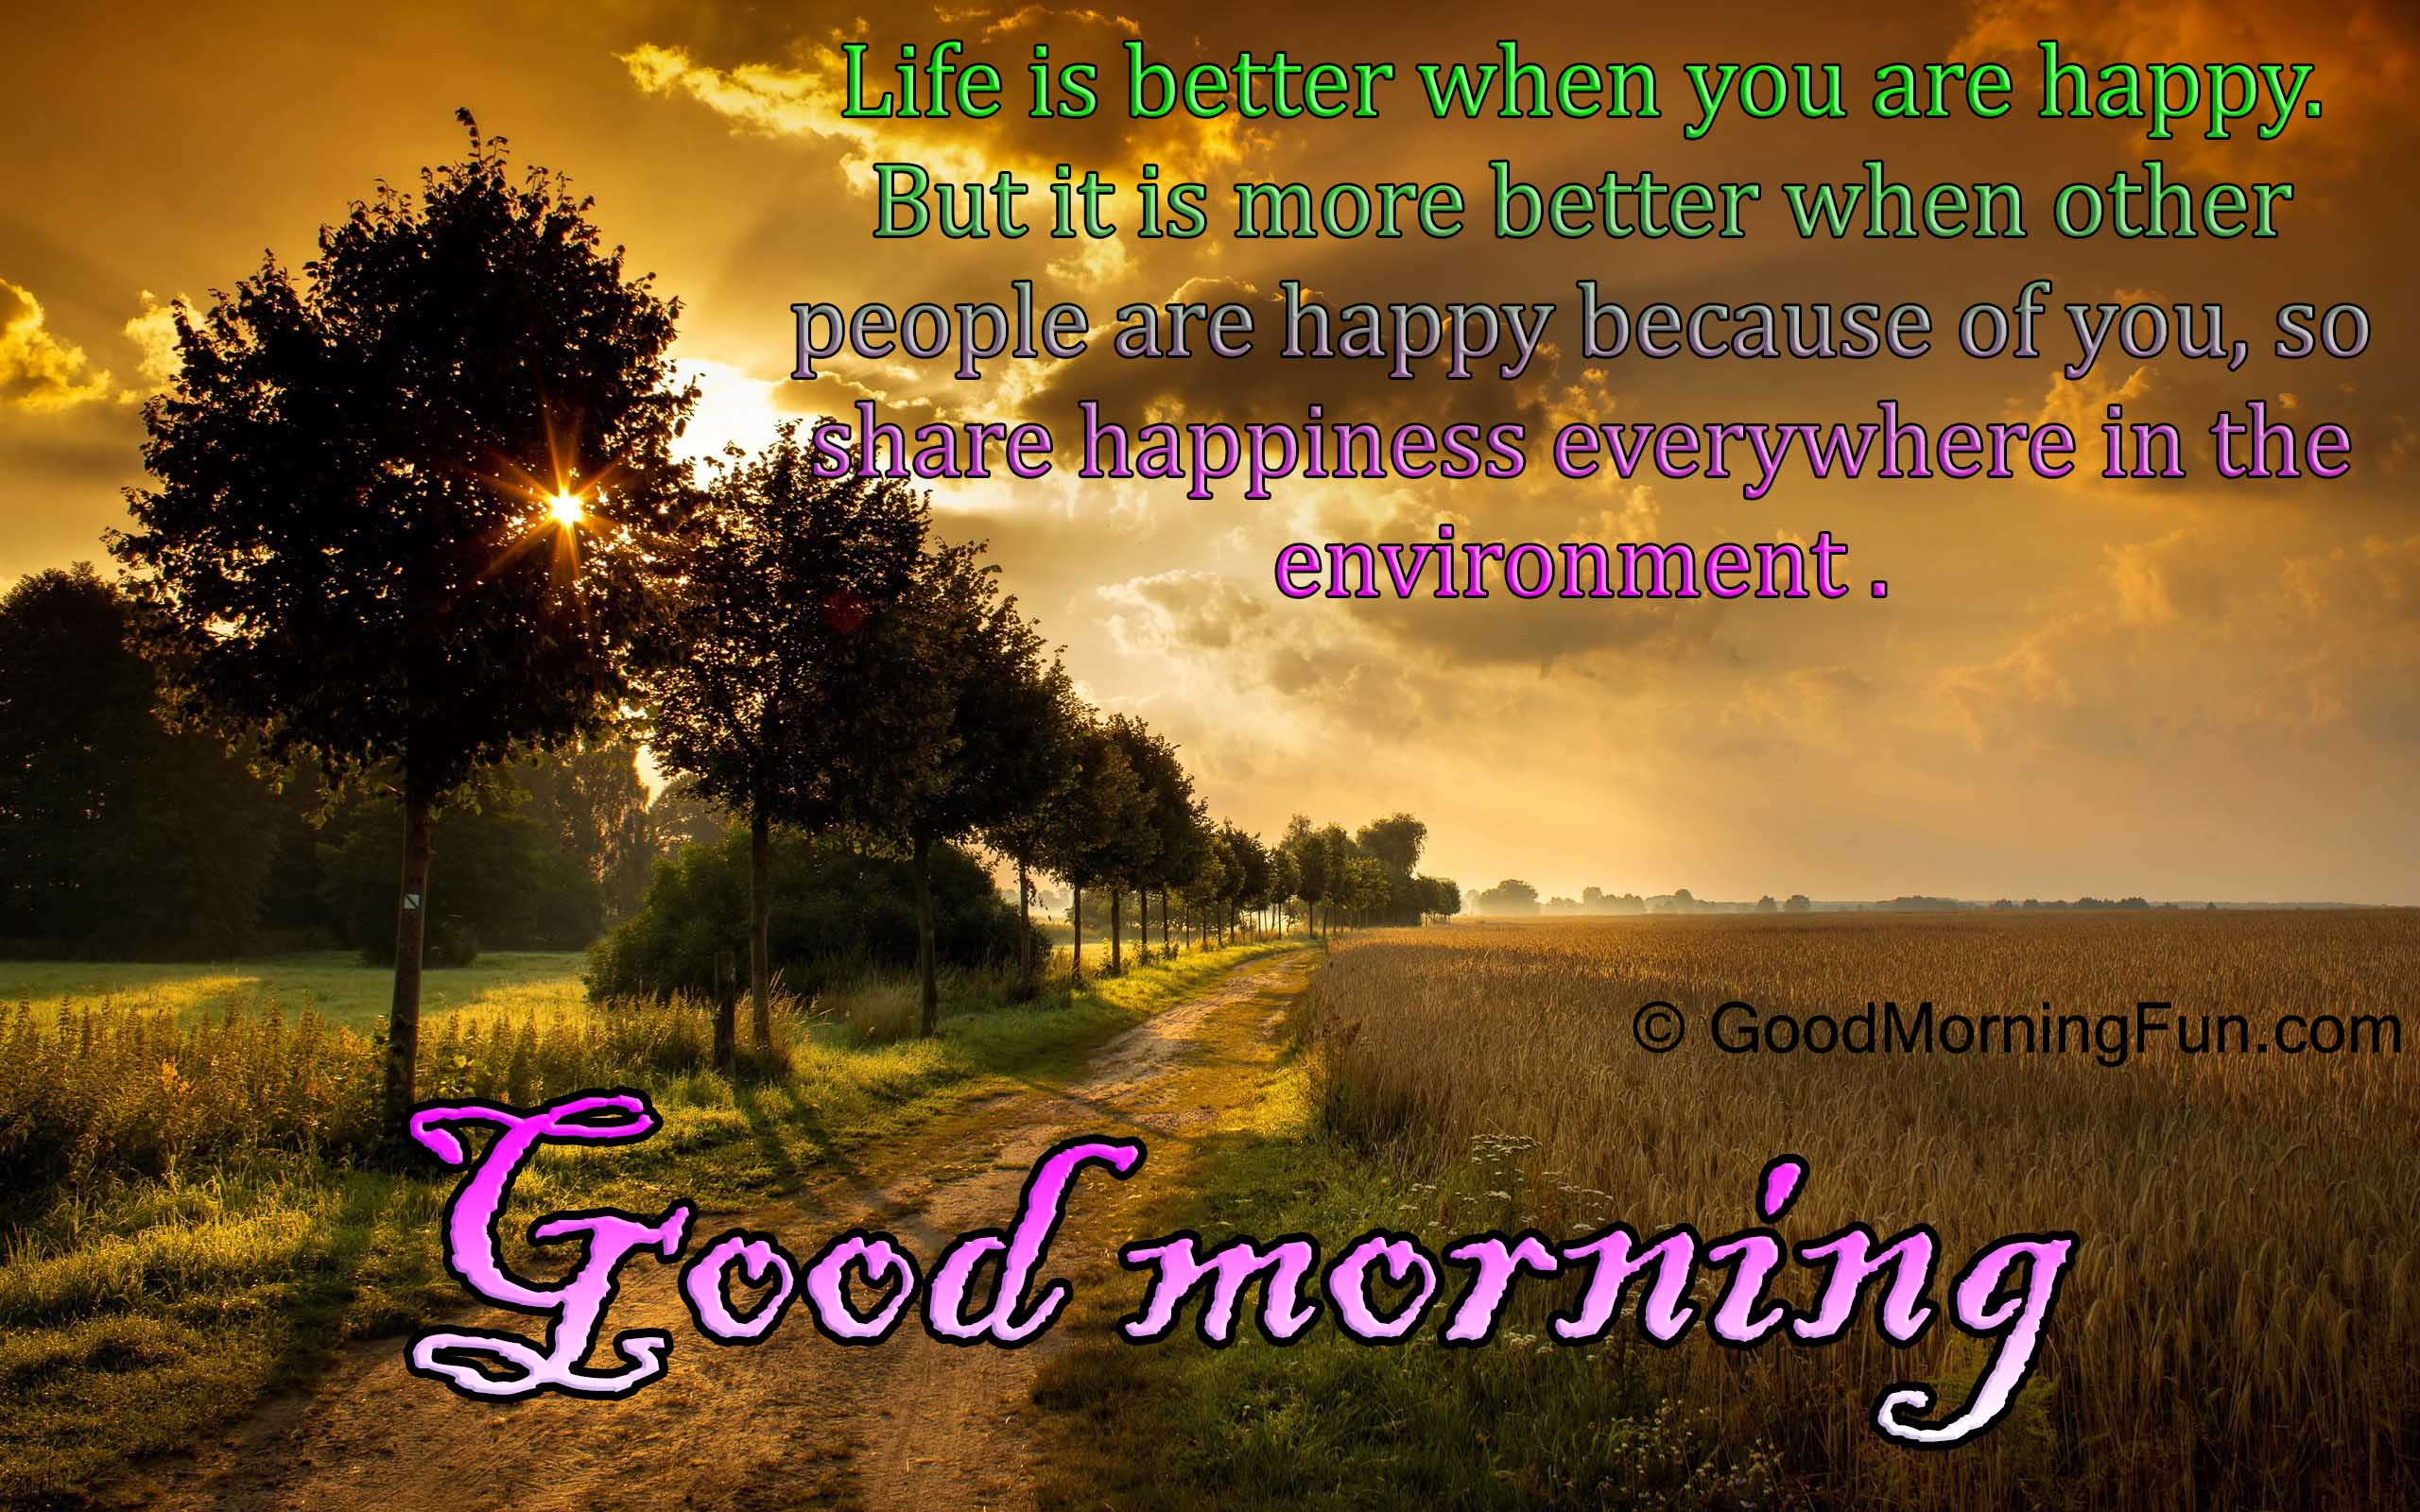 Morning Life Quotes Glamorous Good Morning Quotes On Life Happy Happyness Environment  Good